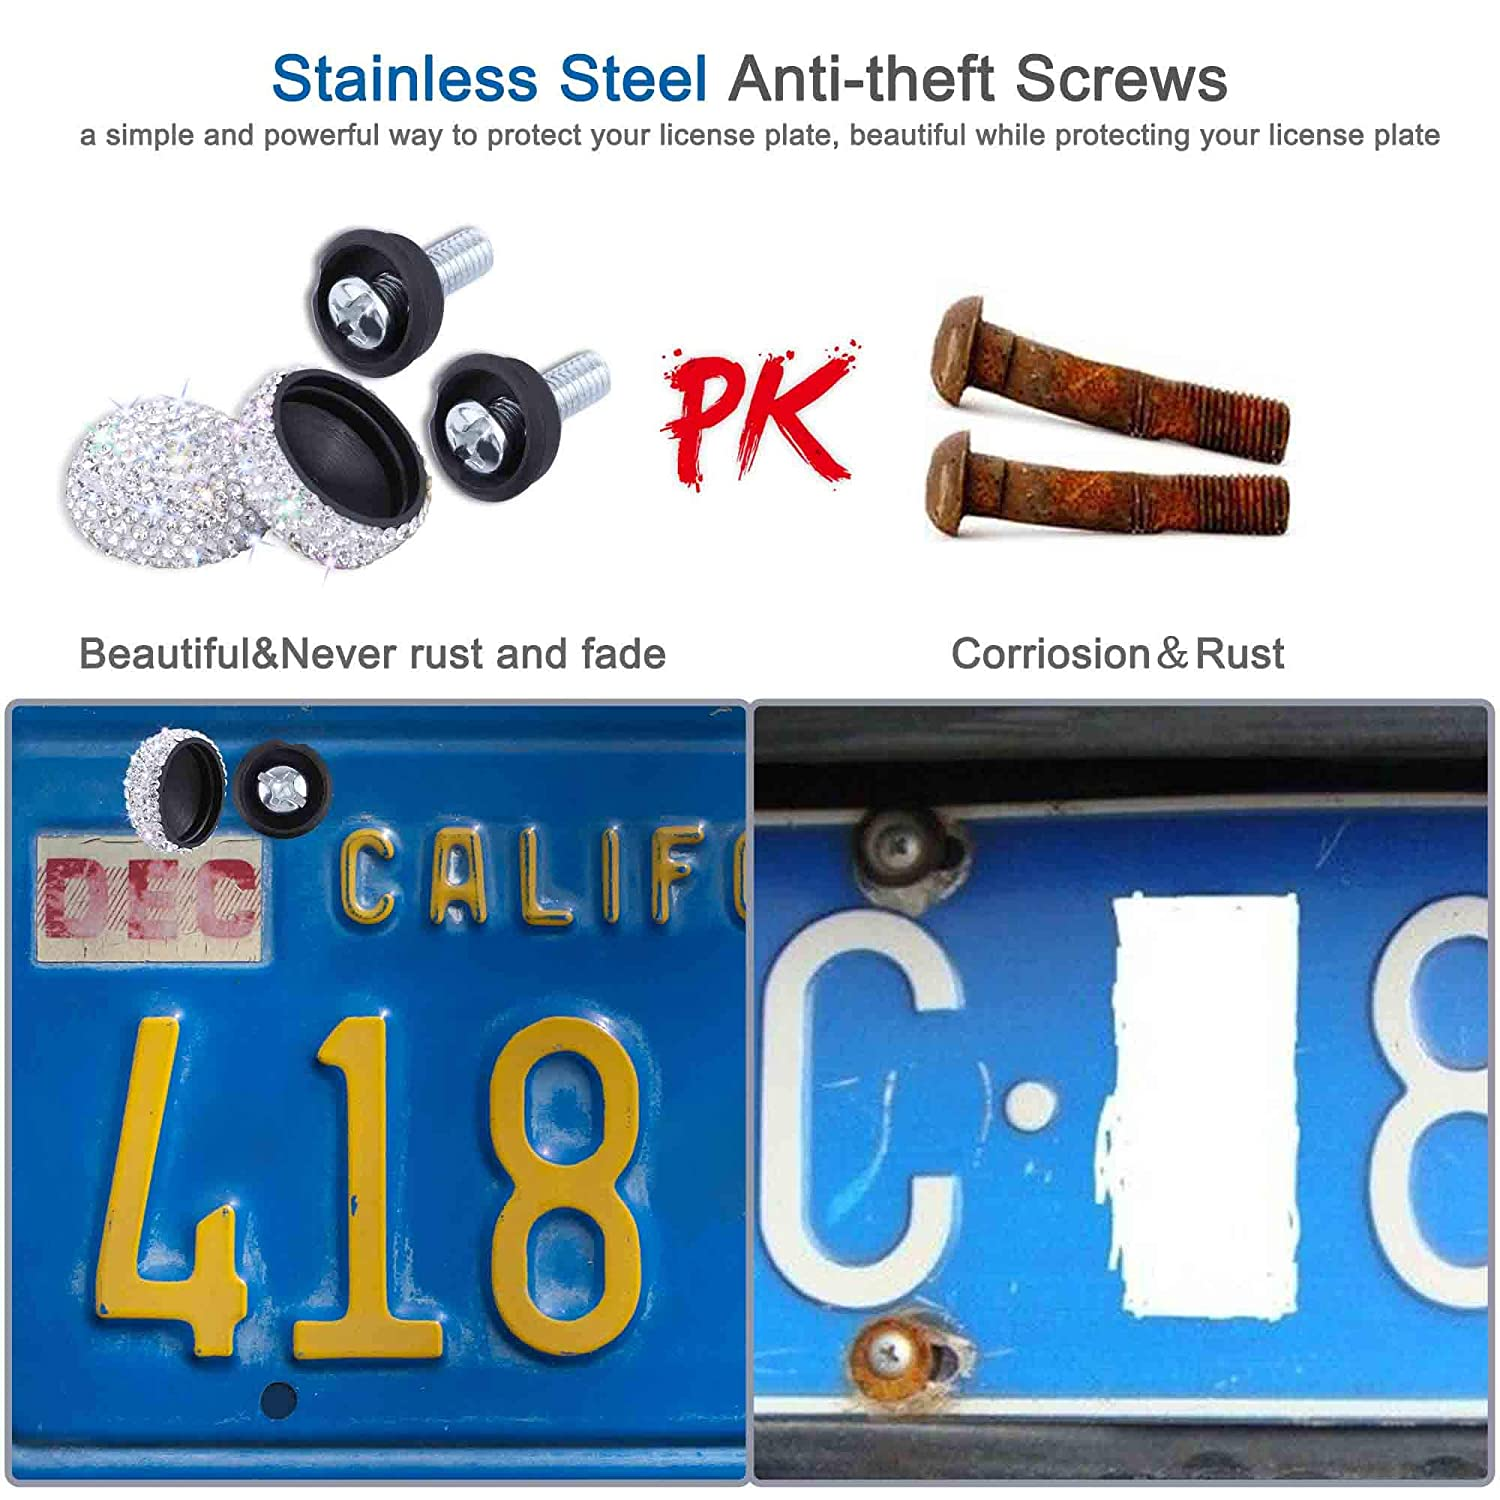 WINKA License Plate Anti Theft Screws Stainless Steel Security Screws Tamper Proof Protection for License Plates on Vehicles Trucks 4pcs Black